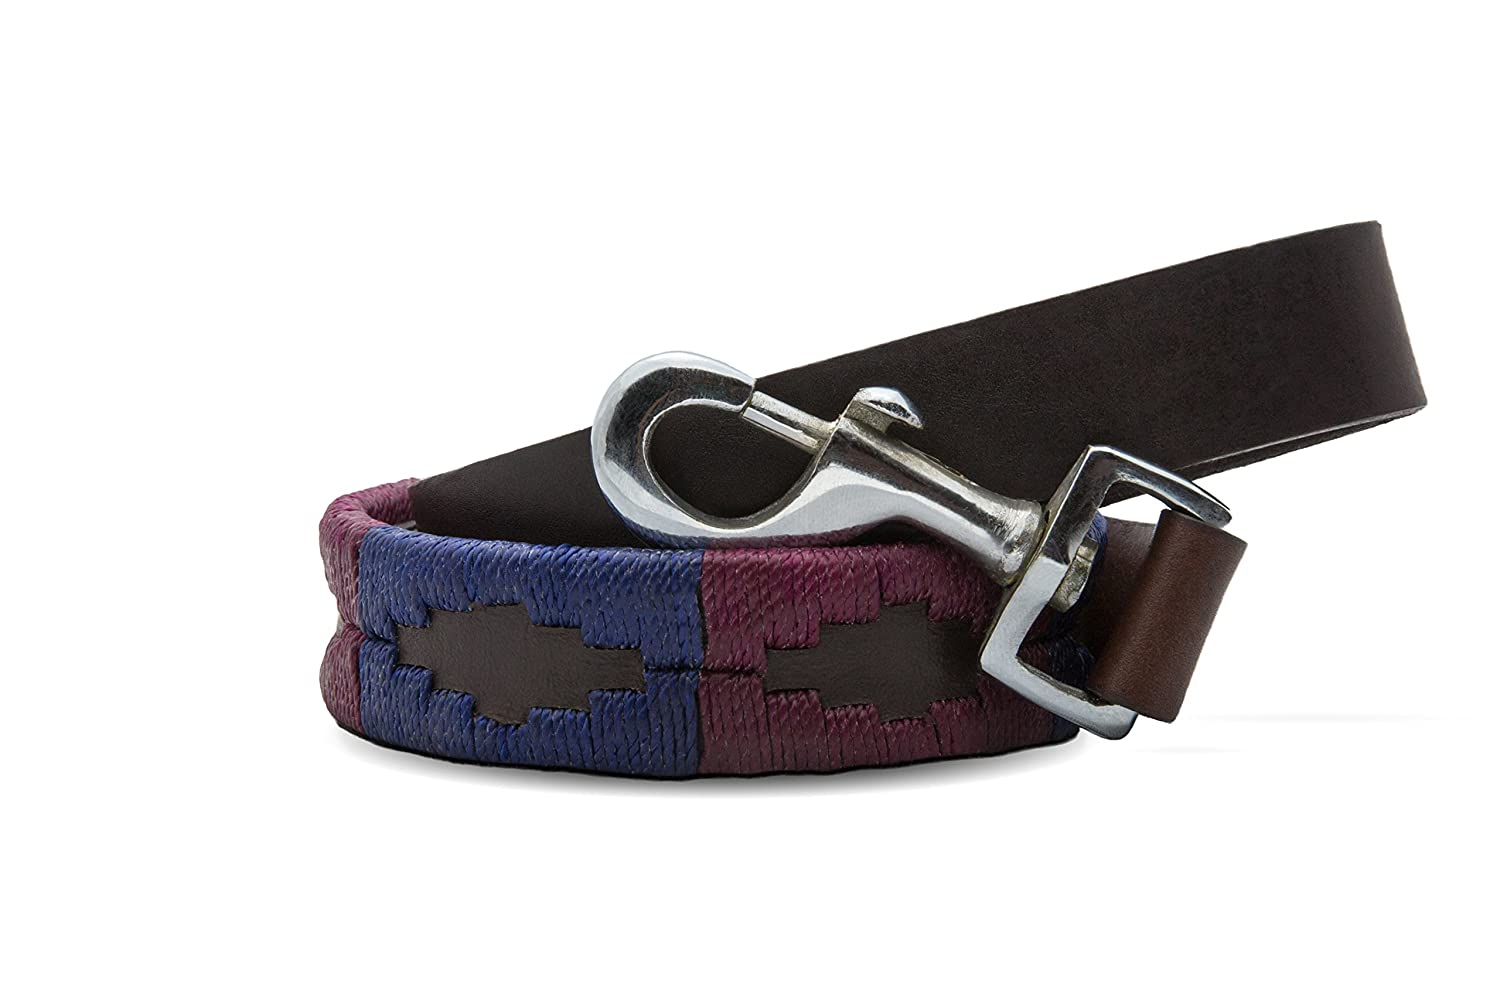 6 Feet Gaucho Goods Premium Hand Stitched Leather Dog Leash Napa Valley (6ft.)